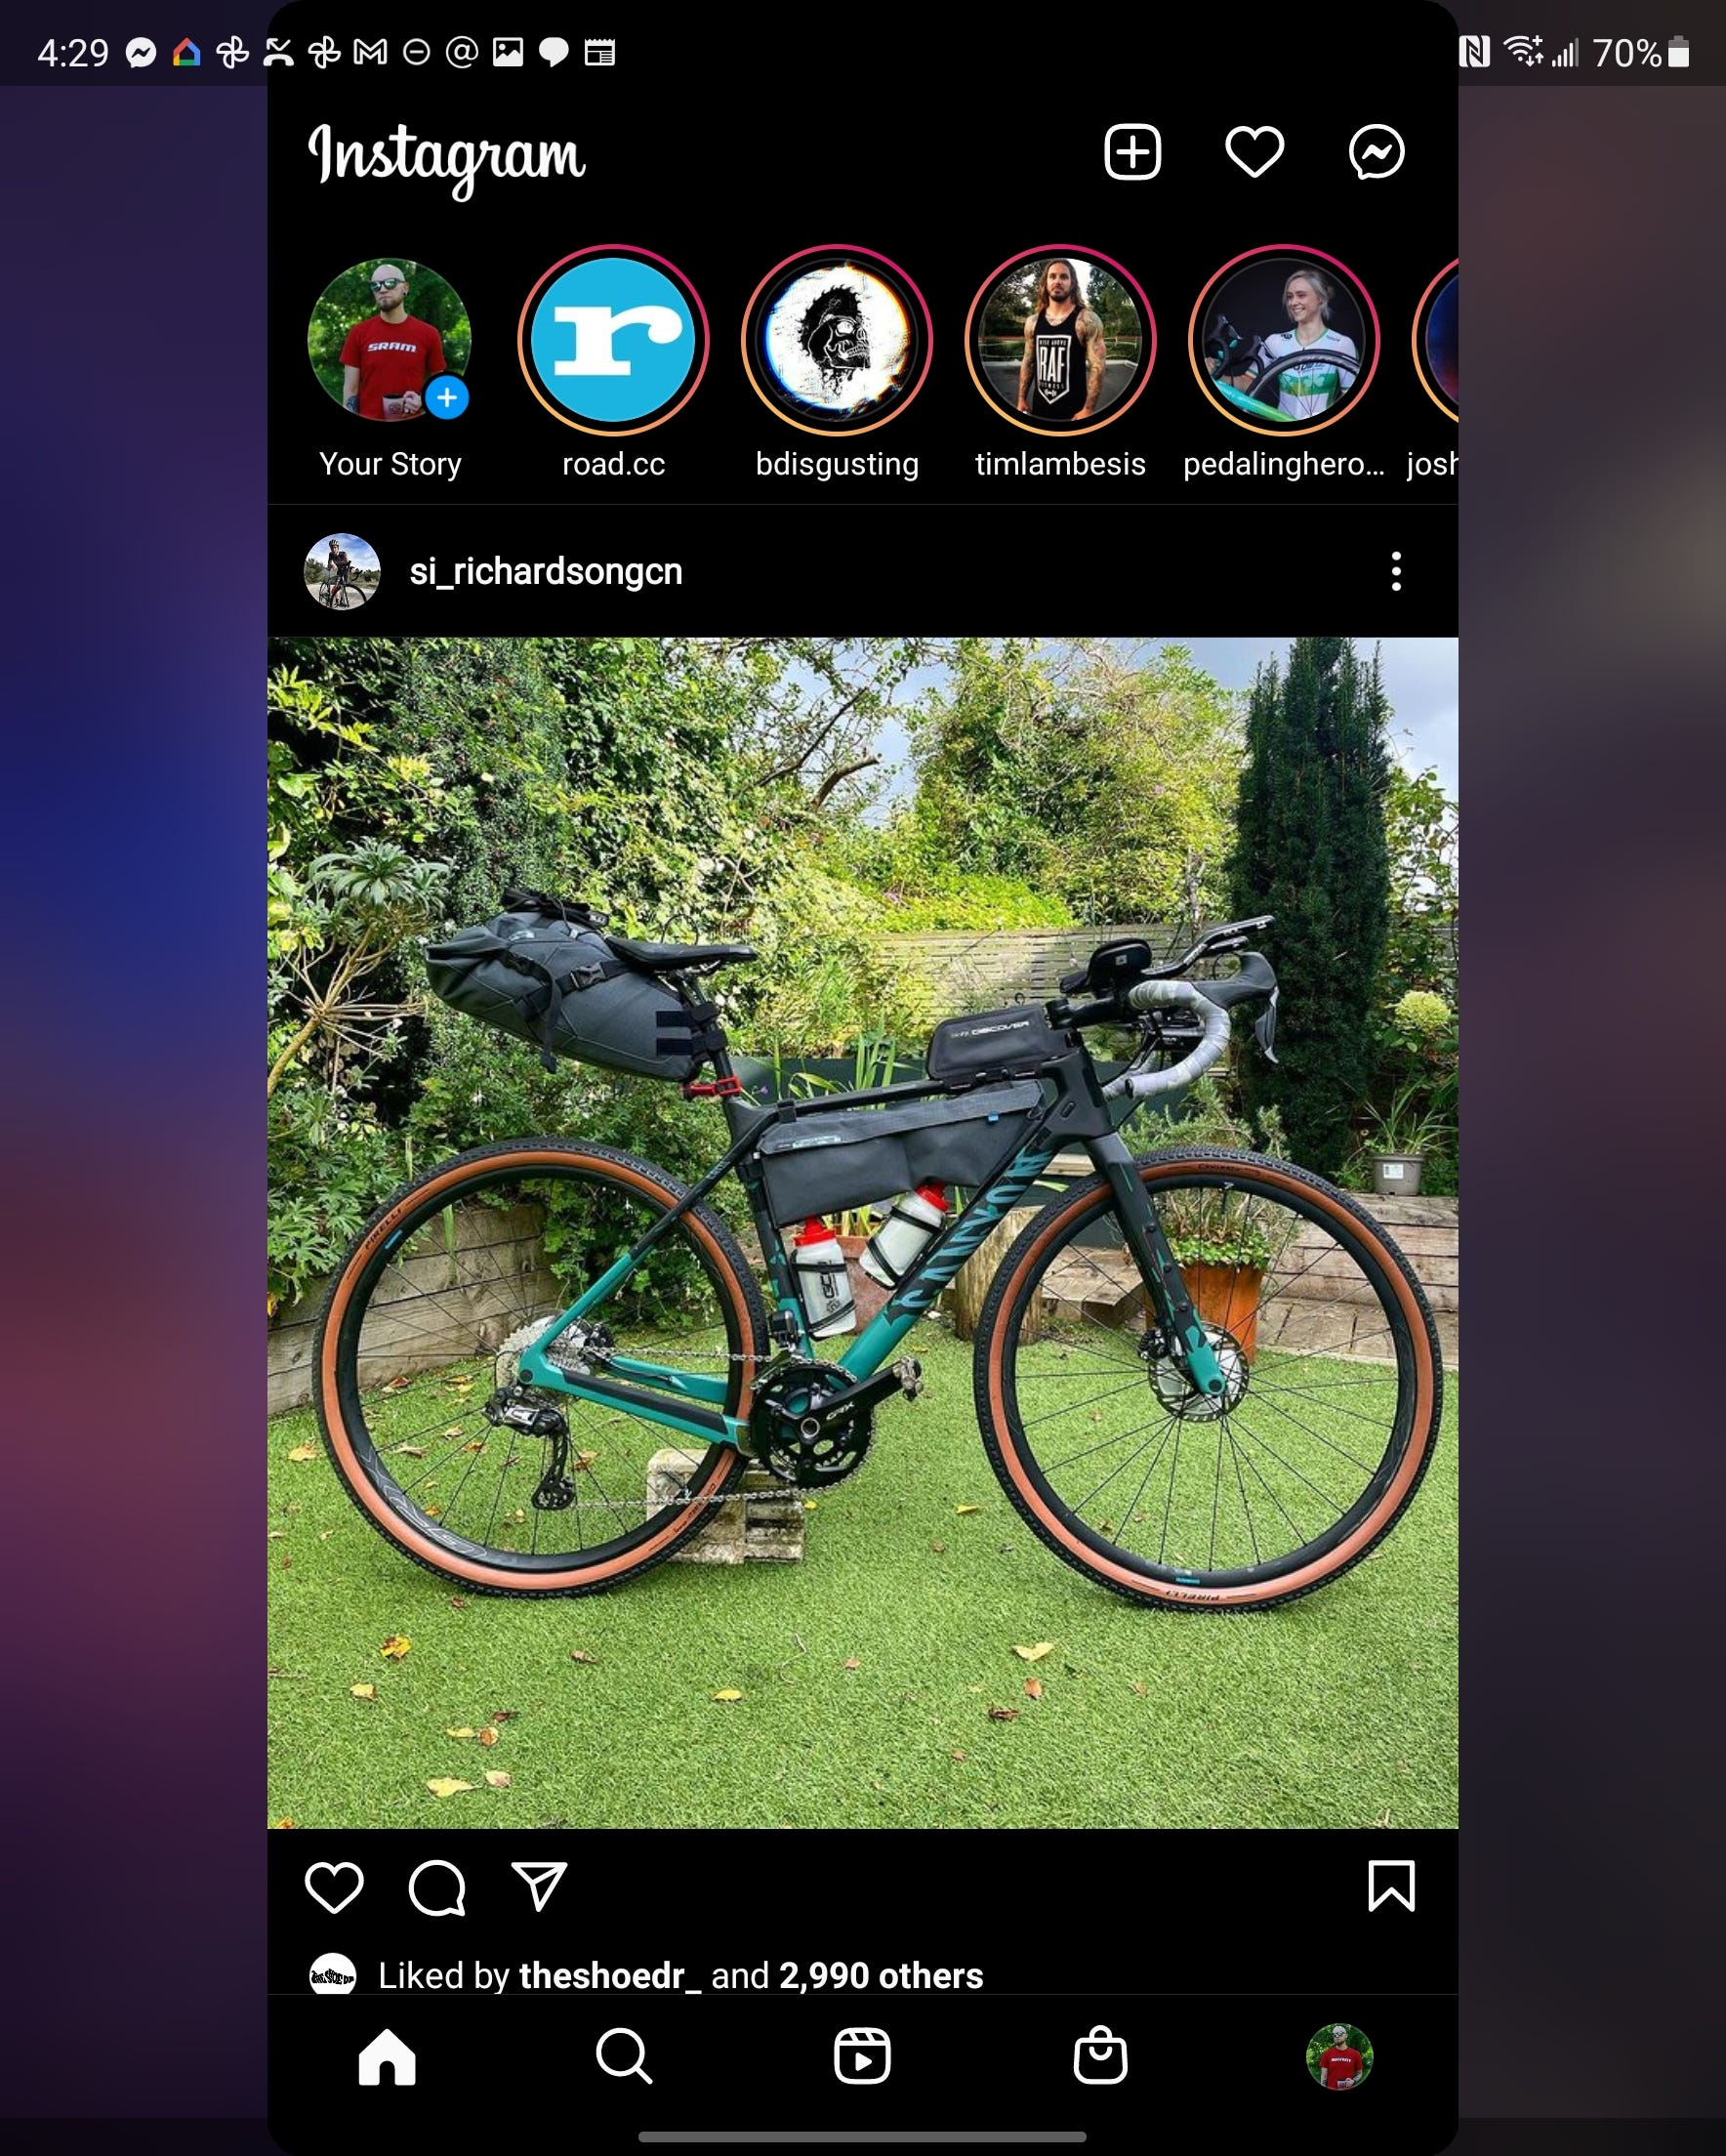 Instagram on the Fold 3's main display